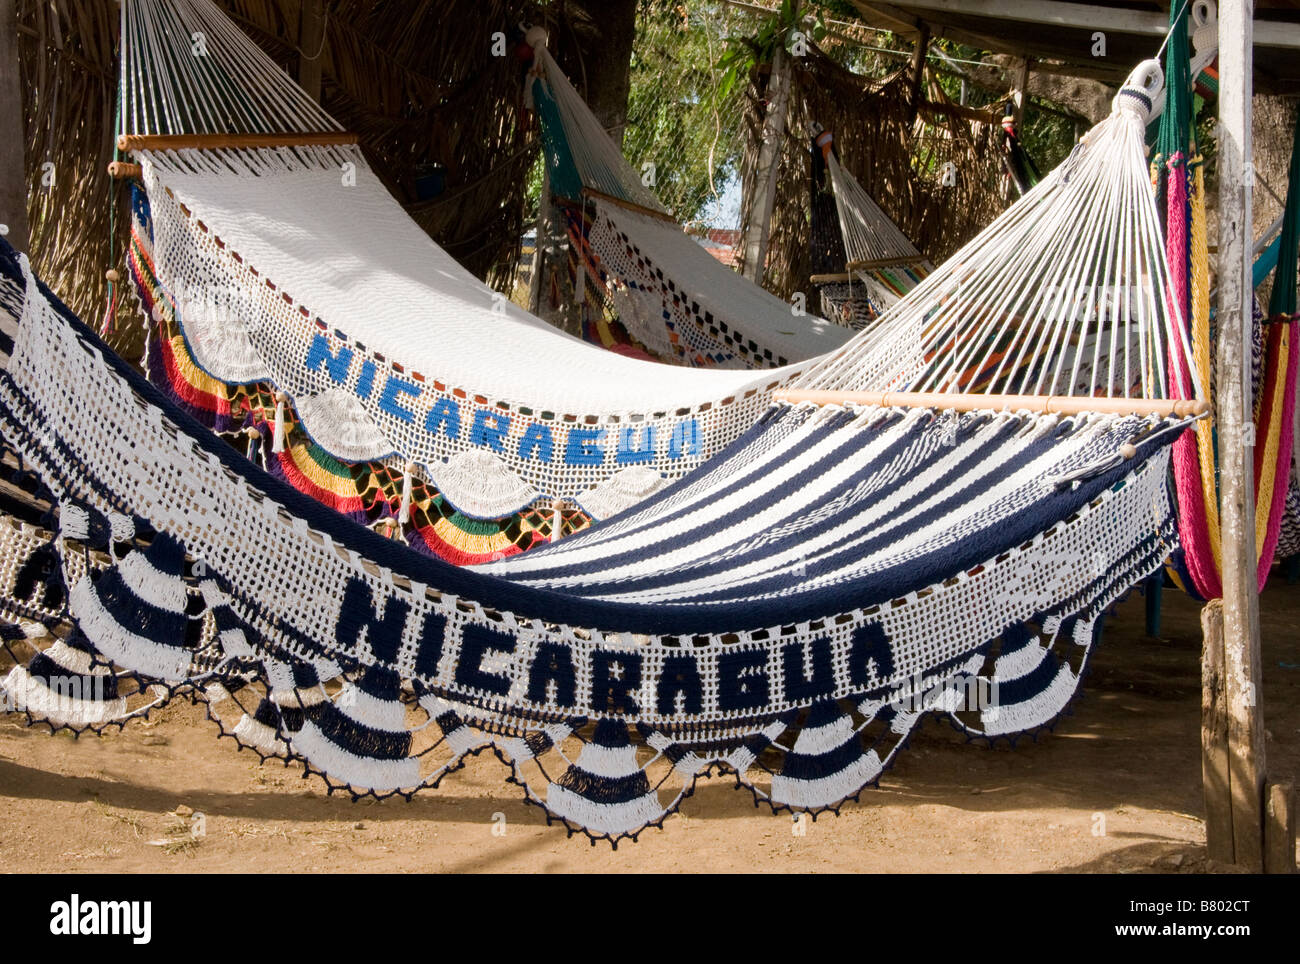 Masaya's handicraft markets are famous for hammocks and other handmade articles - Stock Image